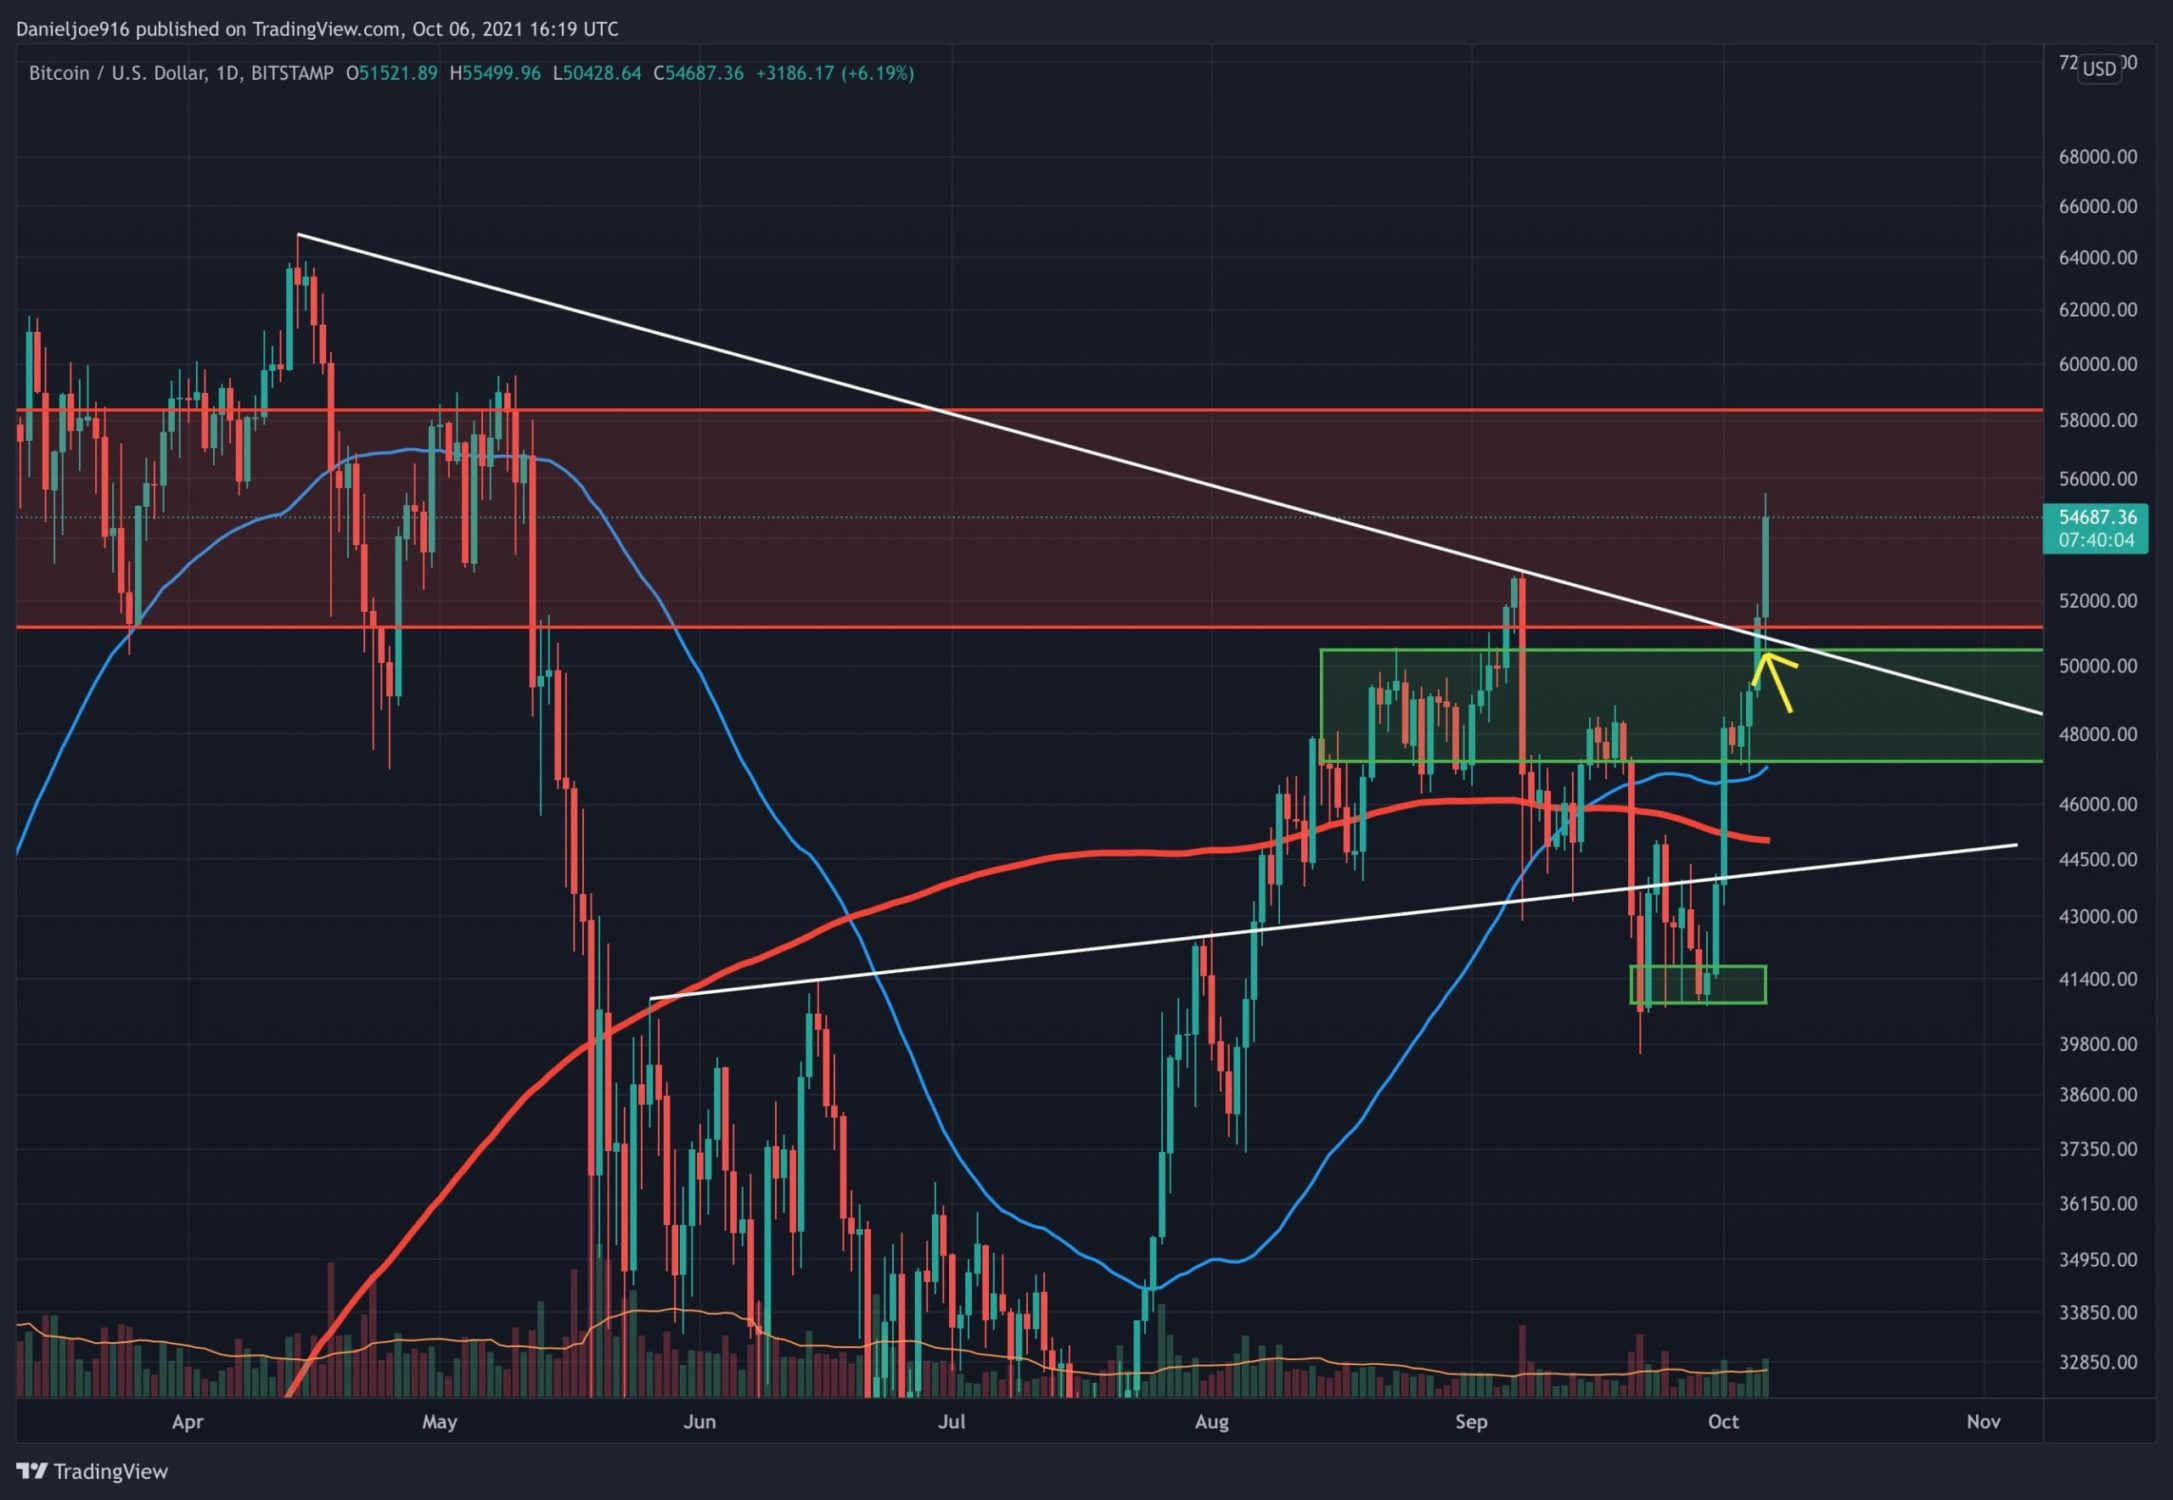 Bitcoin Price Analysis: BTC Spikes to 5-Month High, What Are The Next Levels to Watch?